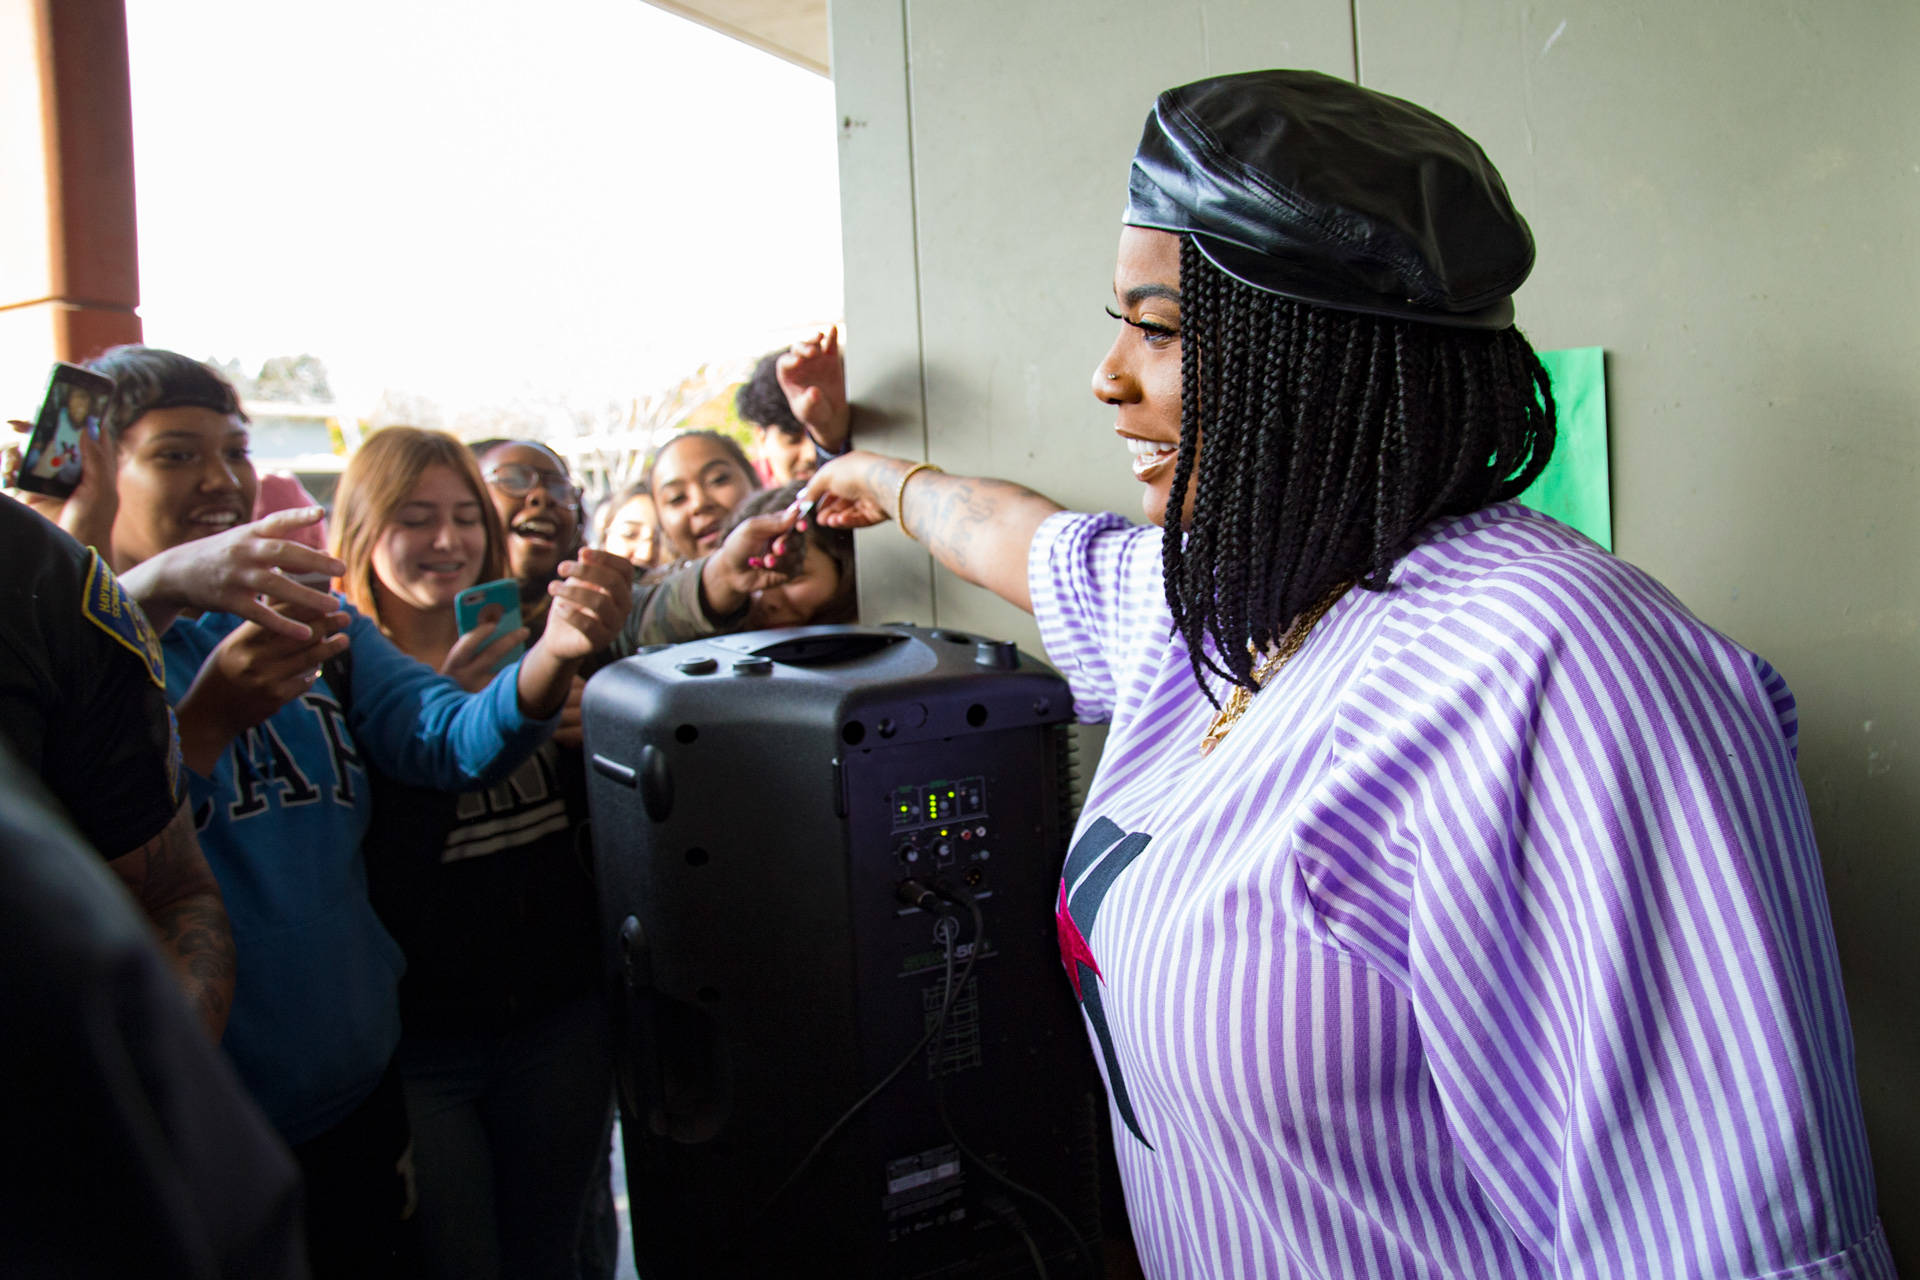 Oakland rapper Kamaiyah surprised students at Hayward High School with tickets to 'Black Panther' on Feb. 20. (Estefany Gonzalez/KQED)